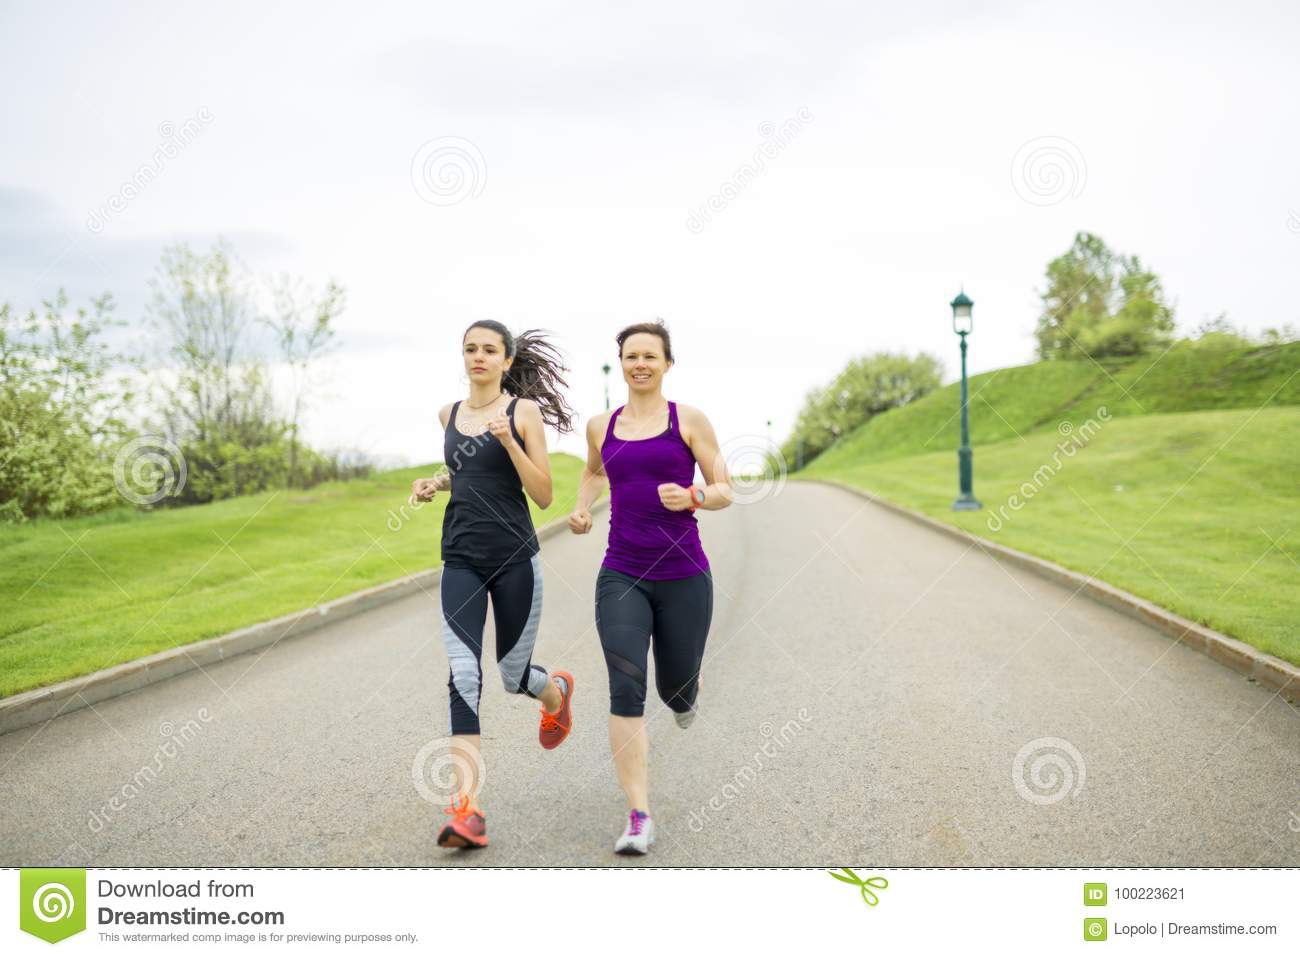 Family, mother and daughter runner outdoors